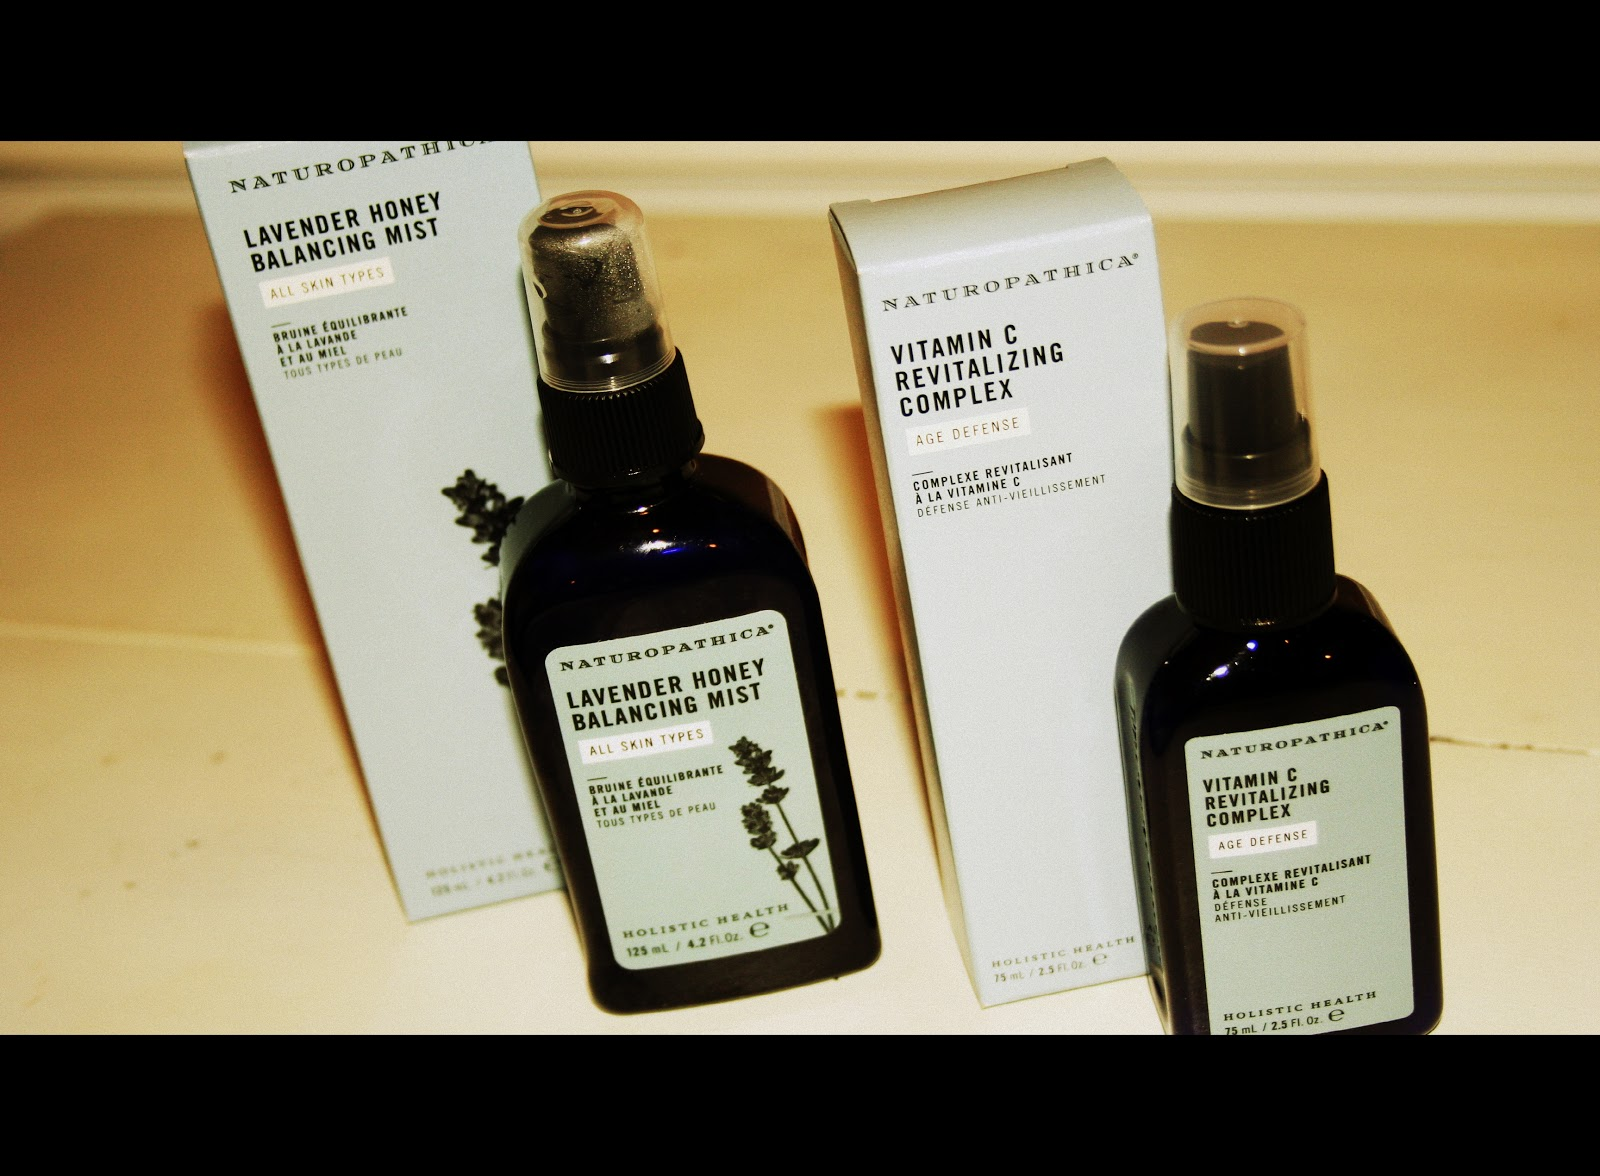 Lavender & Honey Balancing Mist by Naturopathica #17